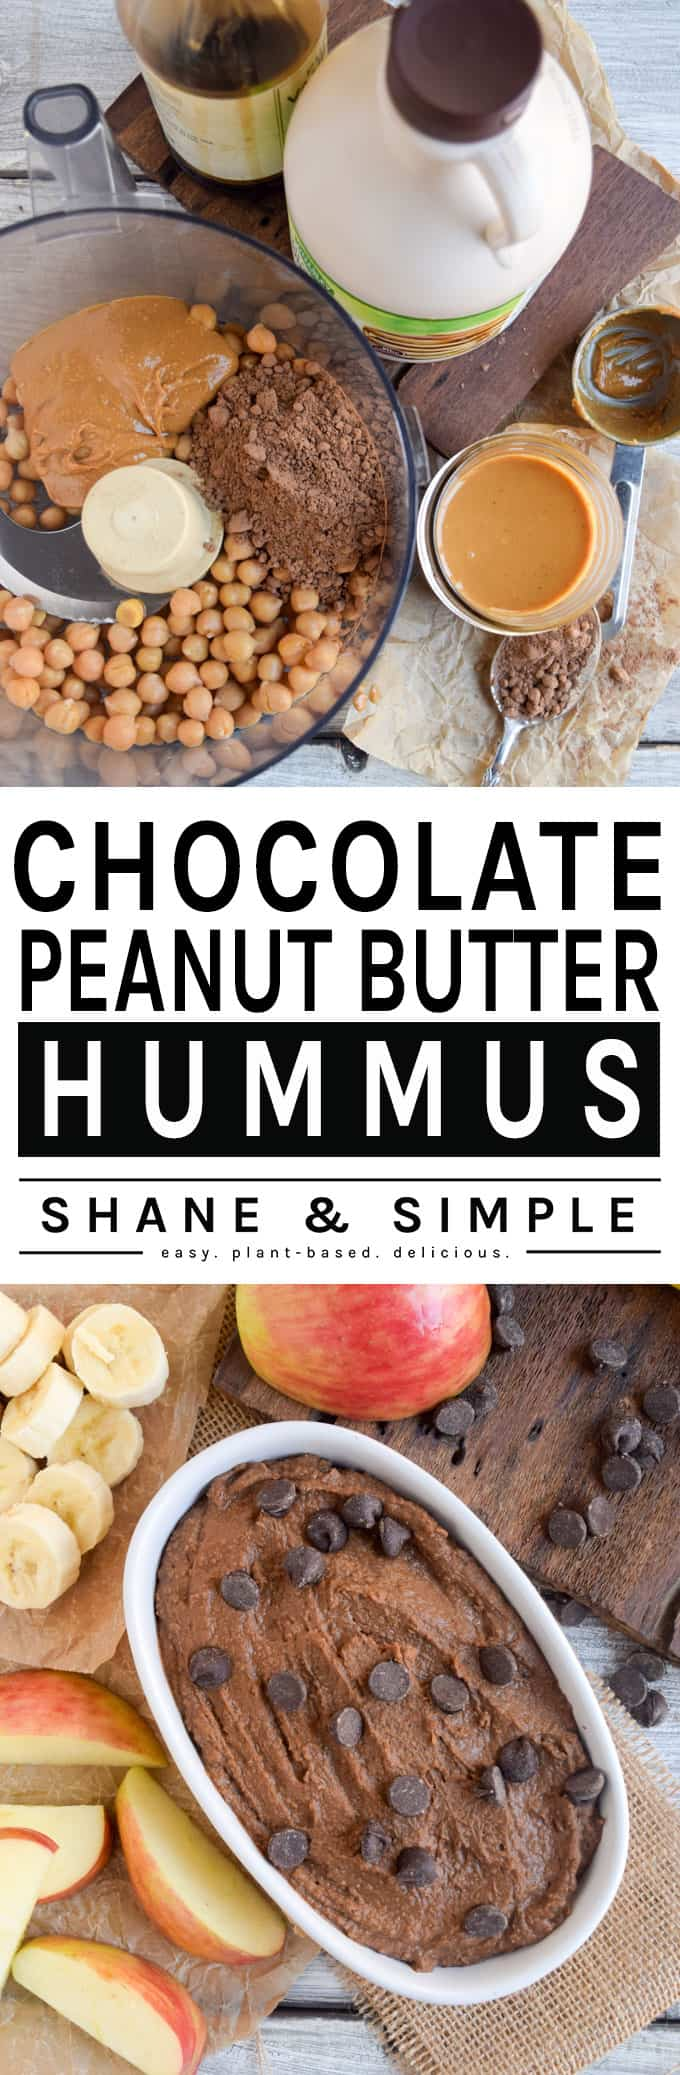 Chocolate Peanut Butter Hummus